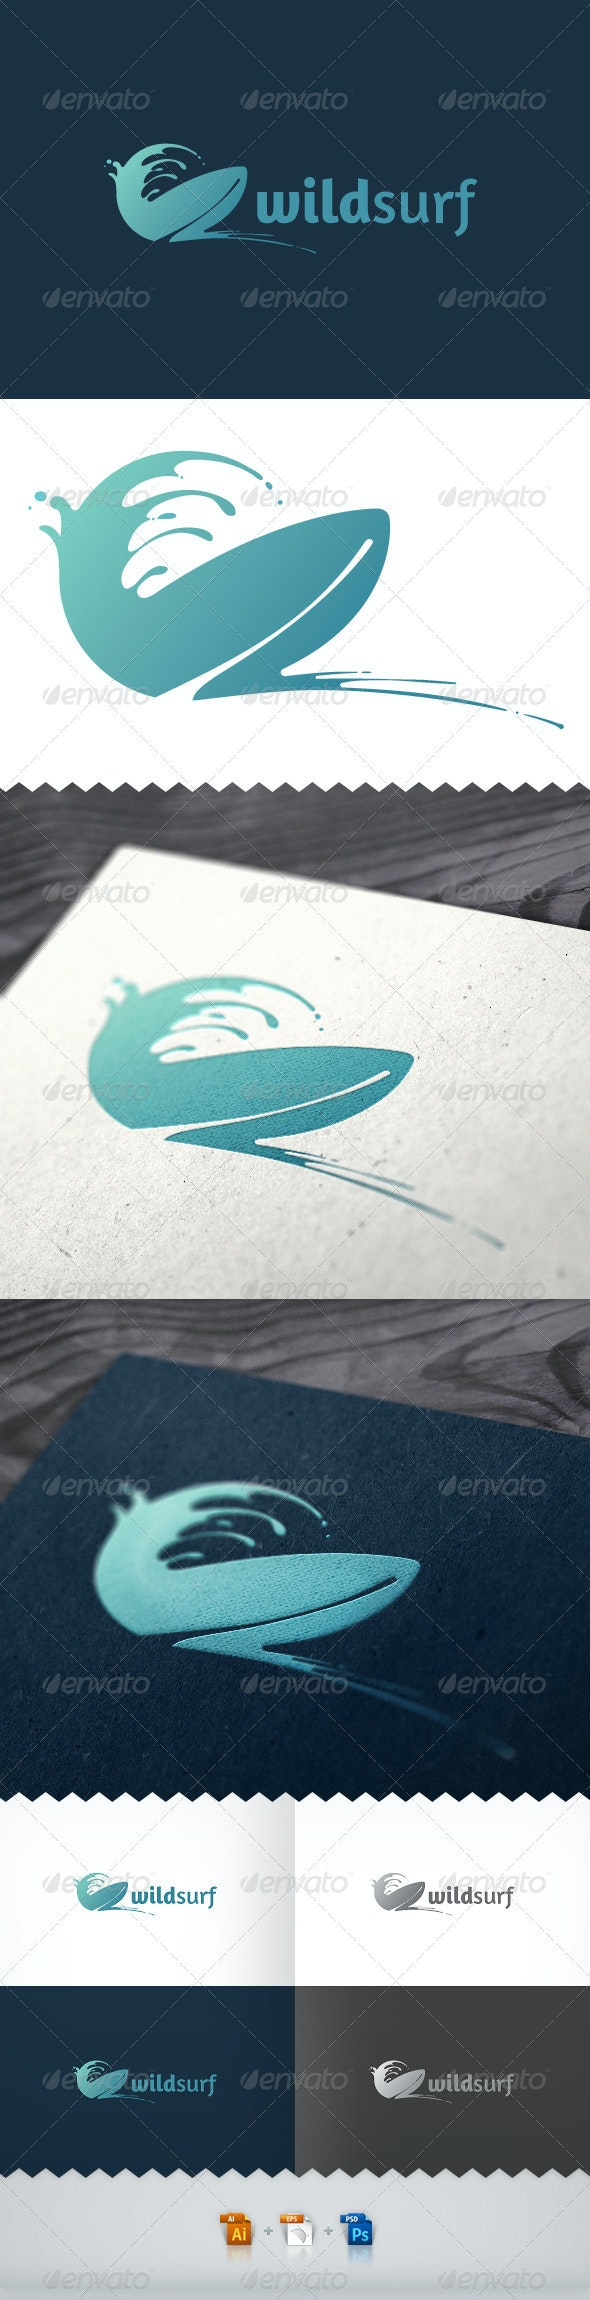 Wild Surf Tour Logo - Objects Logo Templates